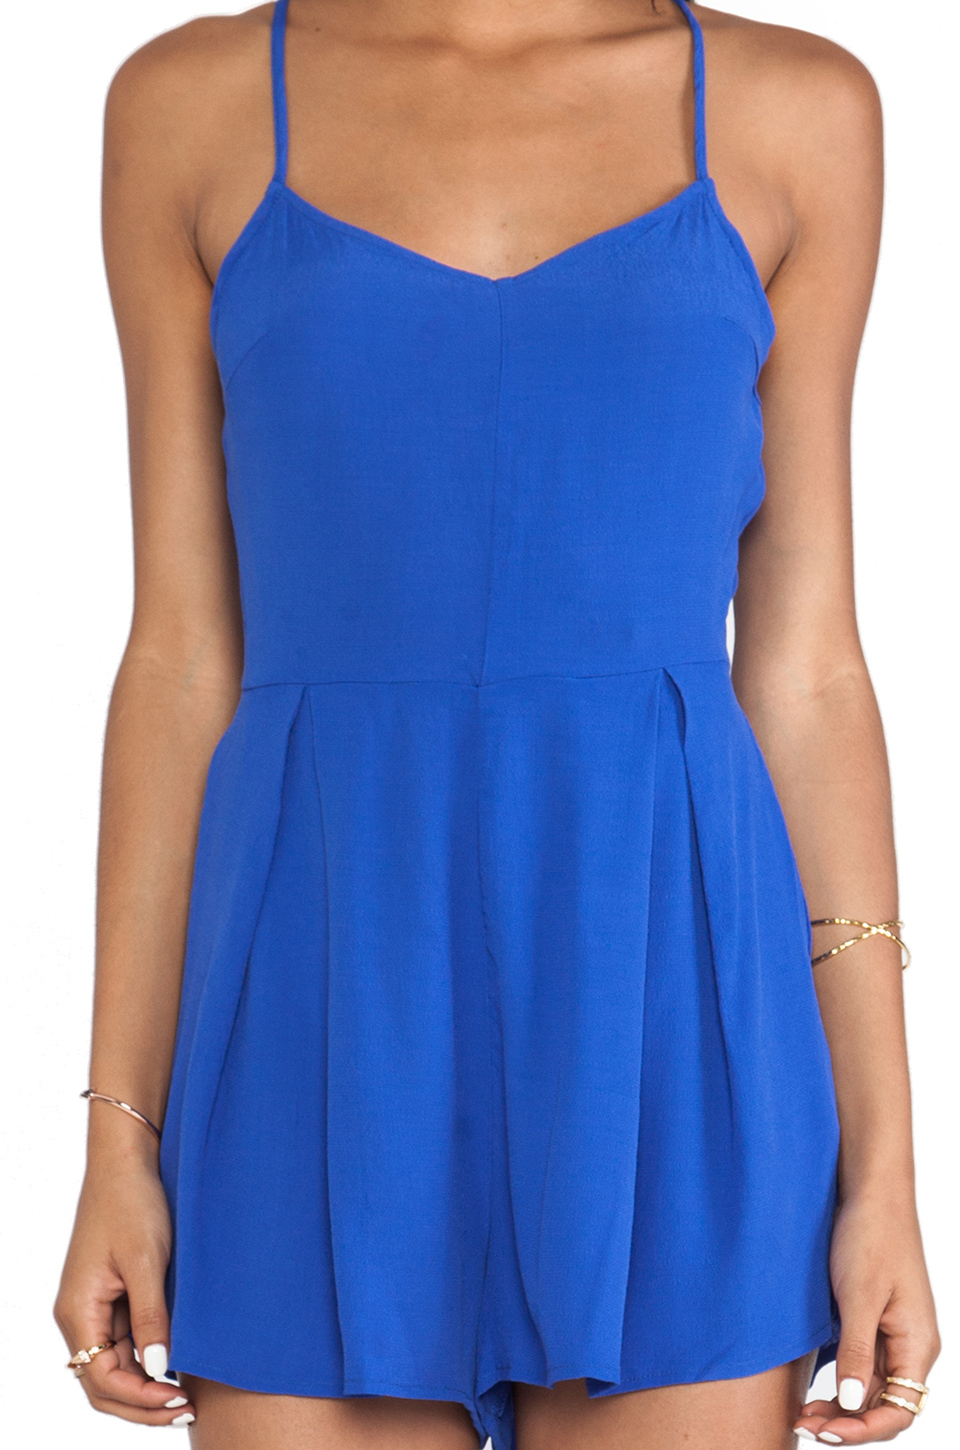 50d04c229c1 Lyst - MINKPINK The Love Cats Playsuit in Blue